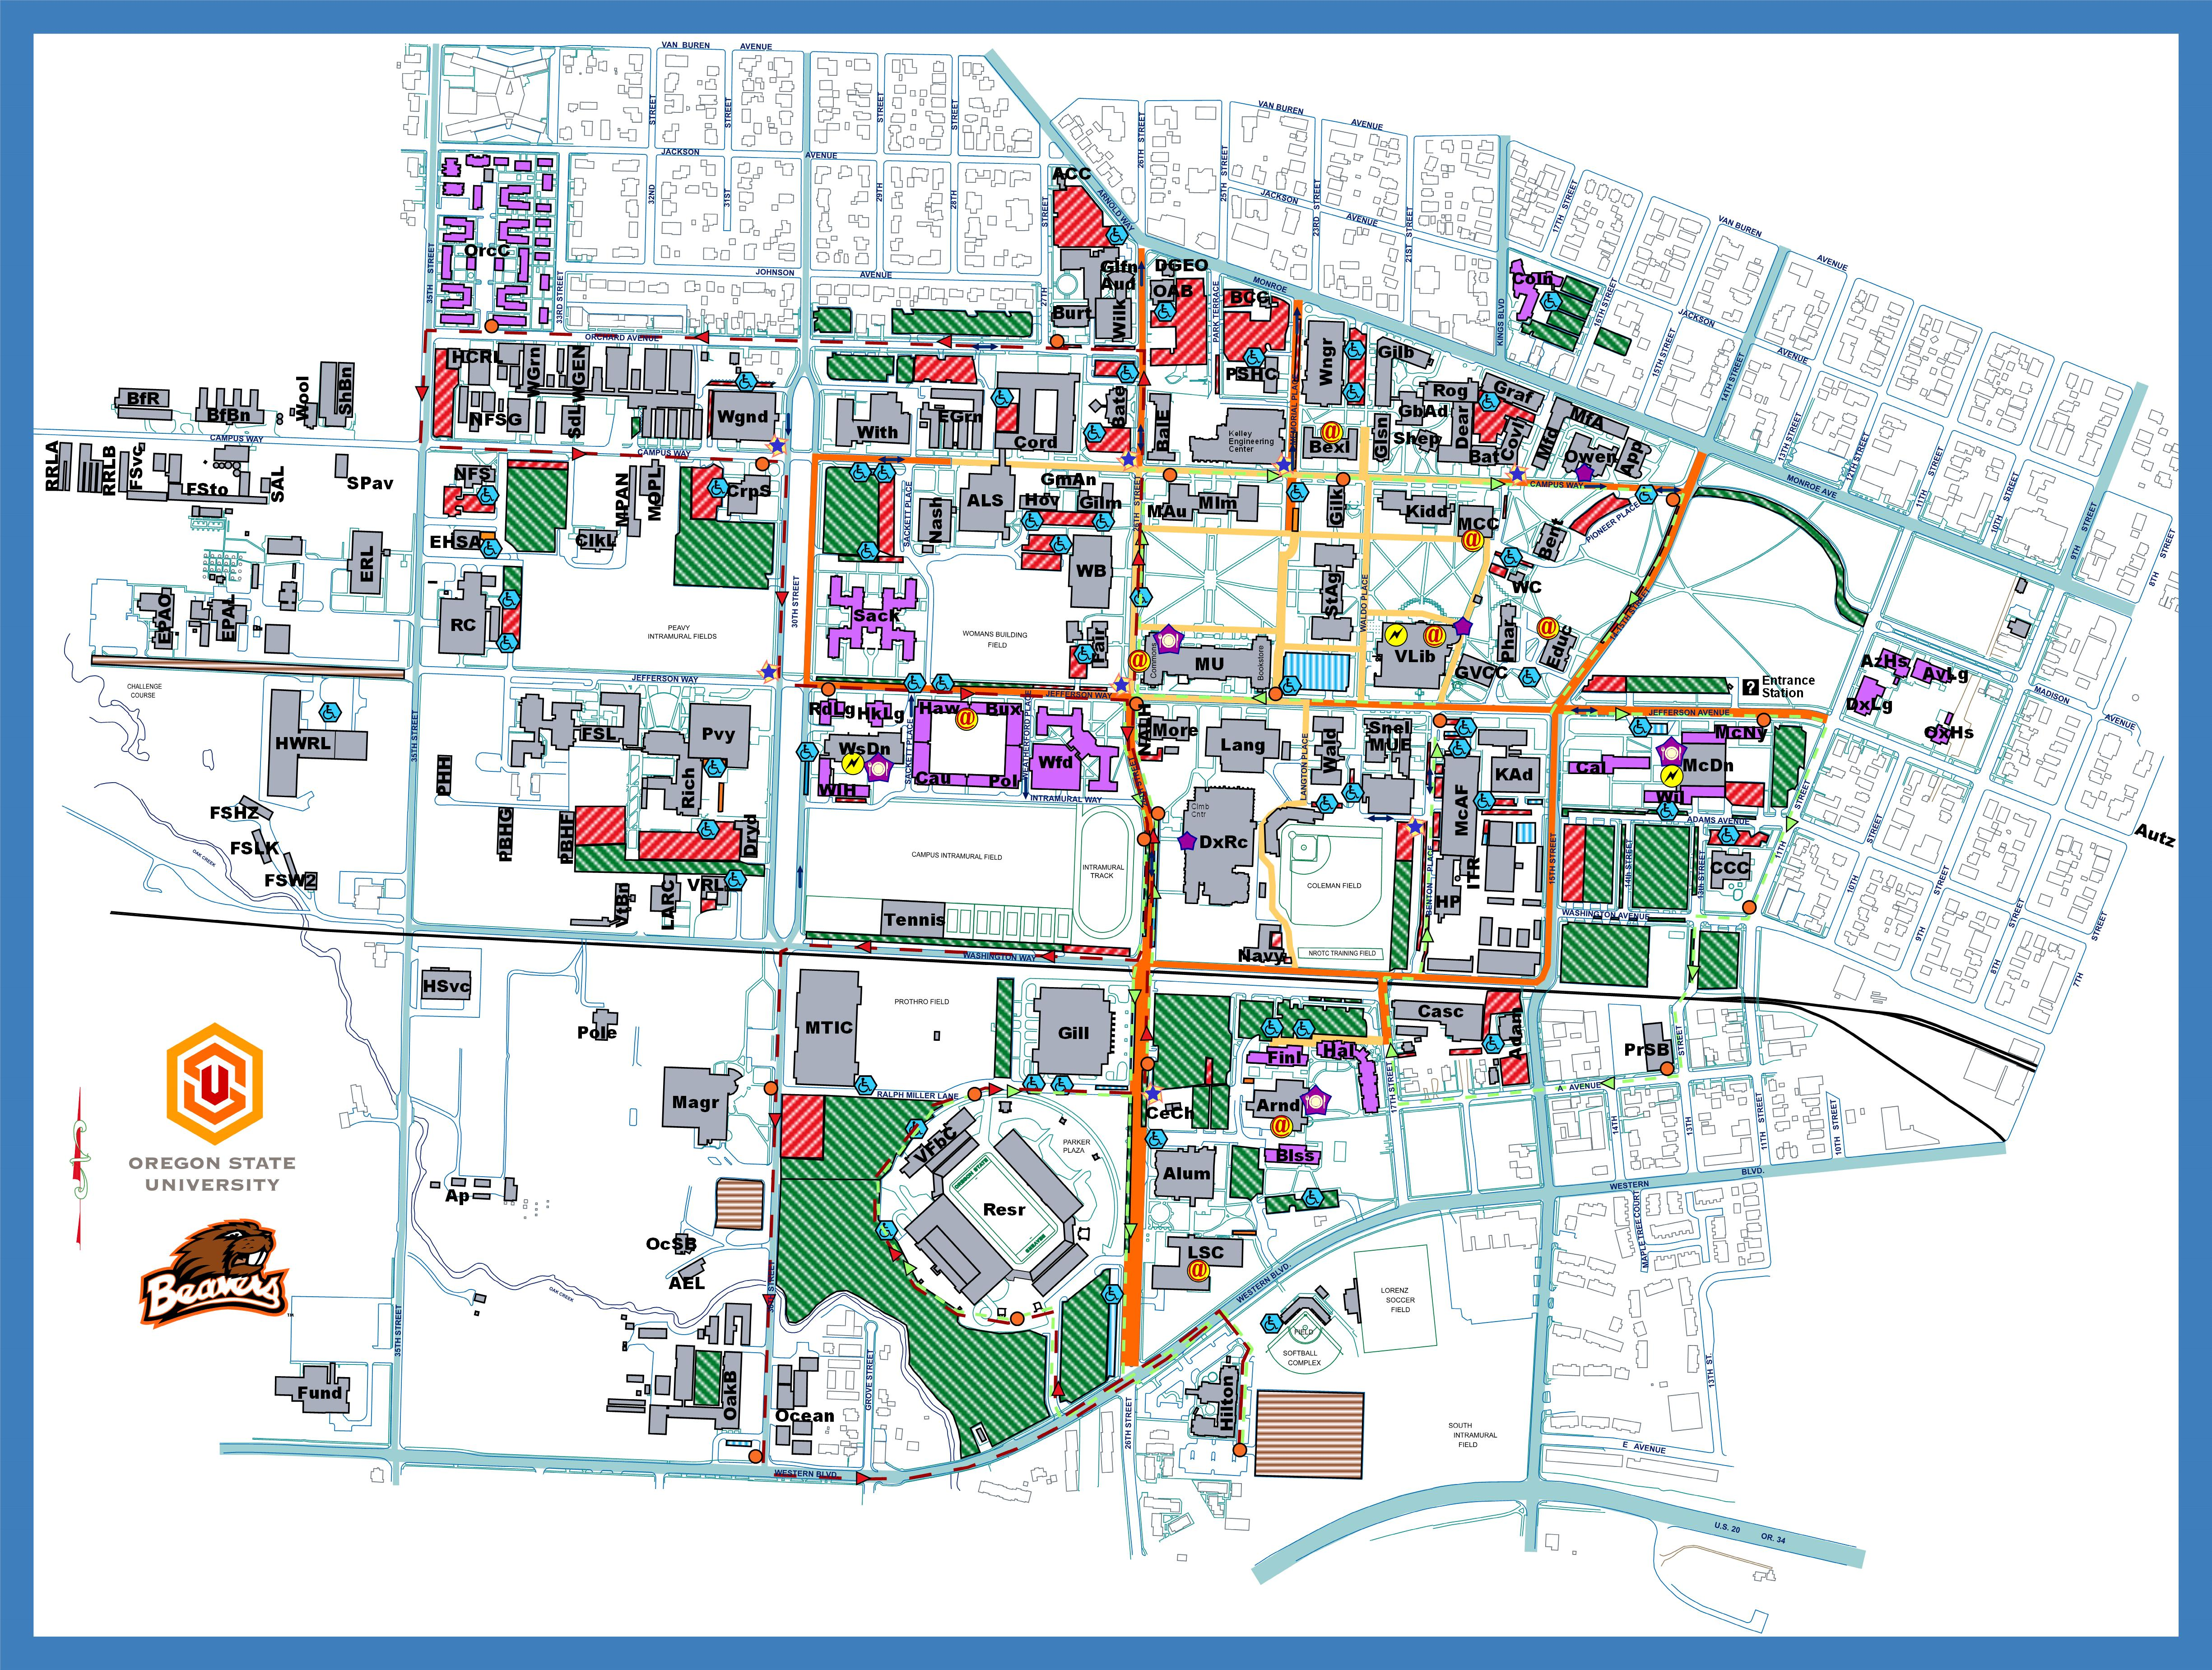 Oregon State University Campus Map Corvallis OR 97331 mappery